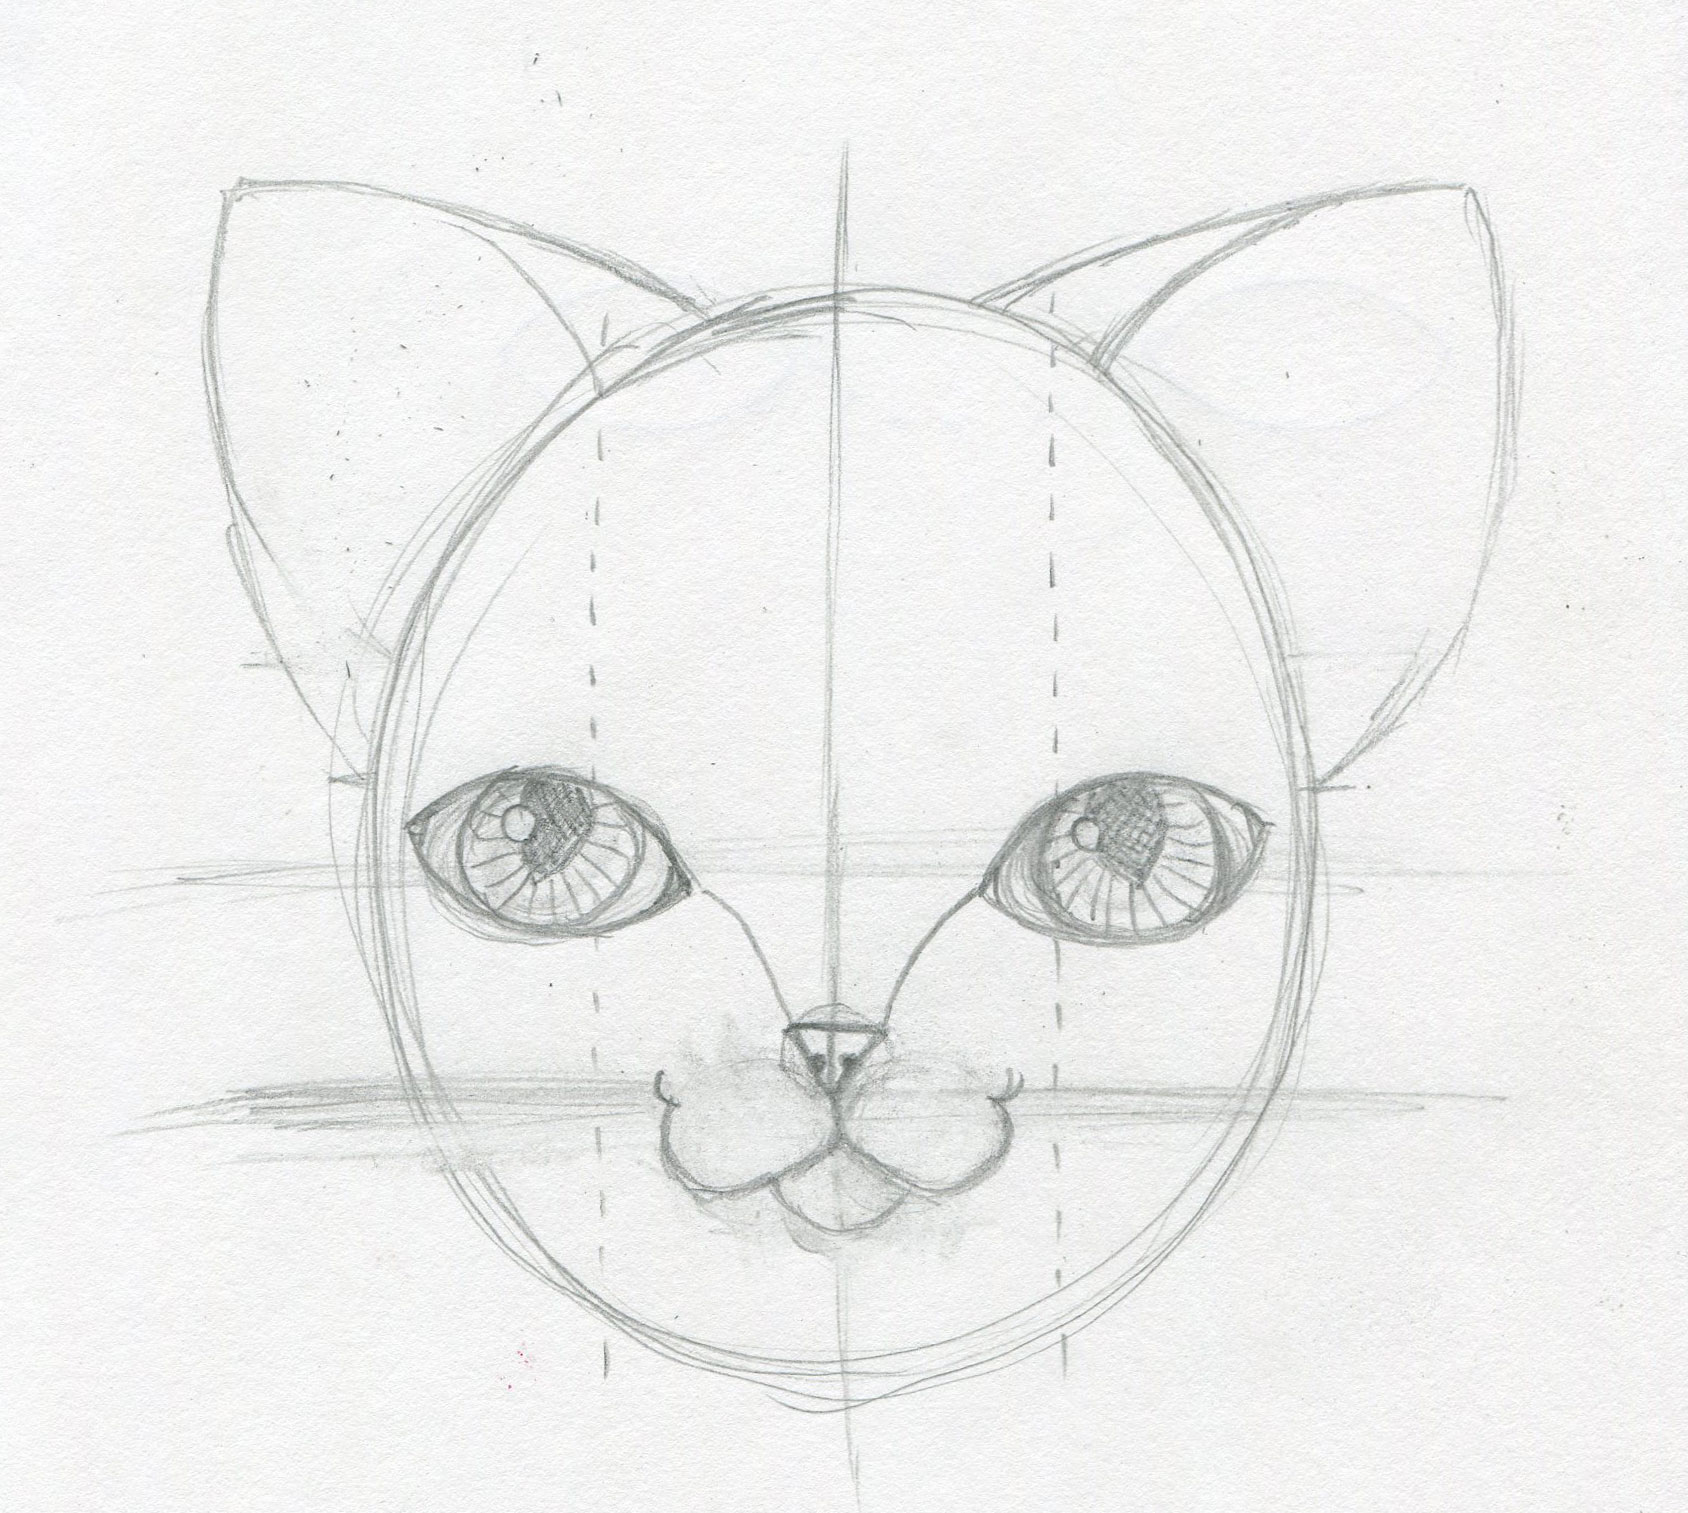 Cat Ear Drawing I Decide I Don't Like These Ears They Are Looking Too  Mouselike And They Are Too Close Together Also, I Think The Face Shape  Needs To Be